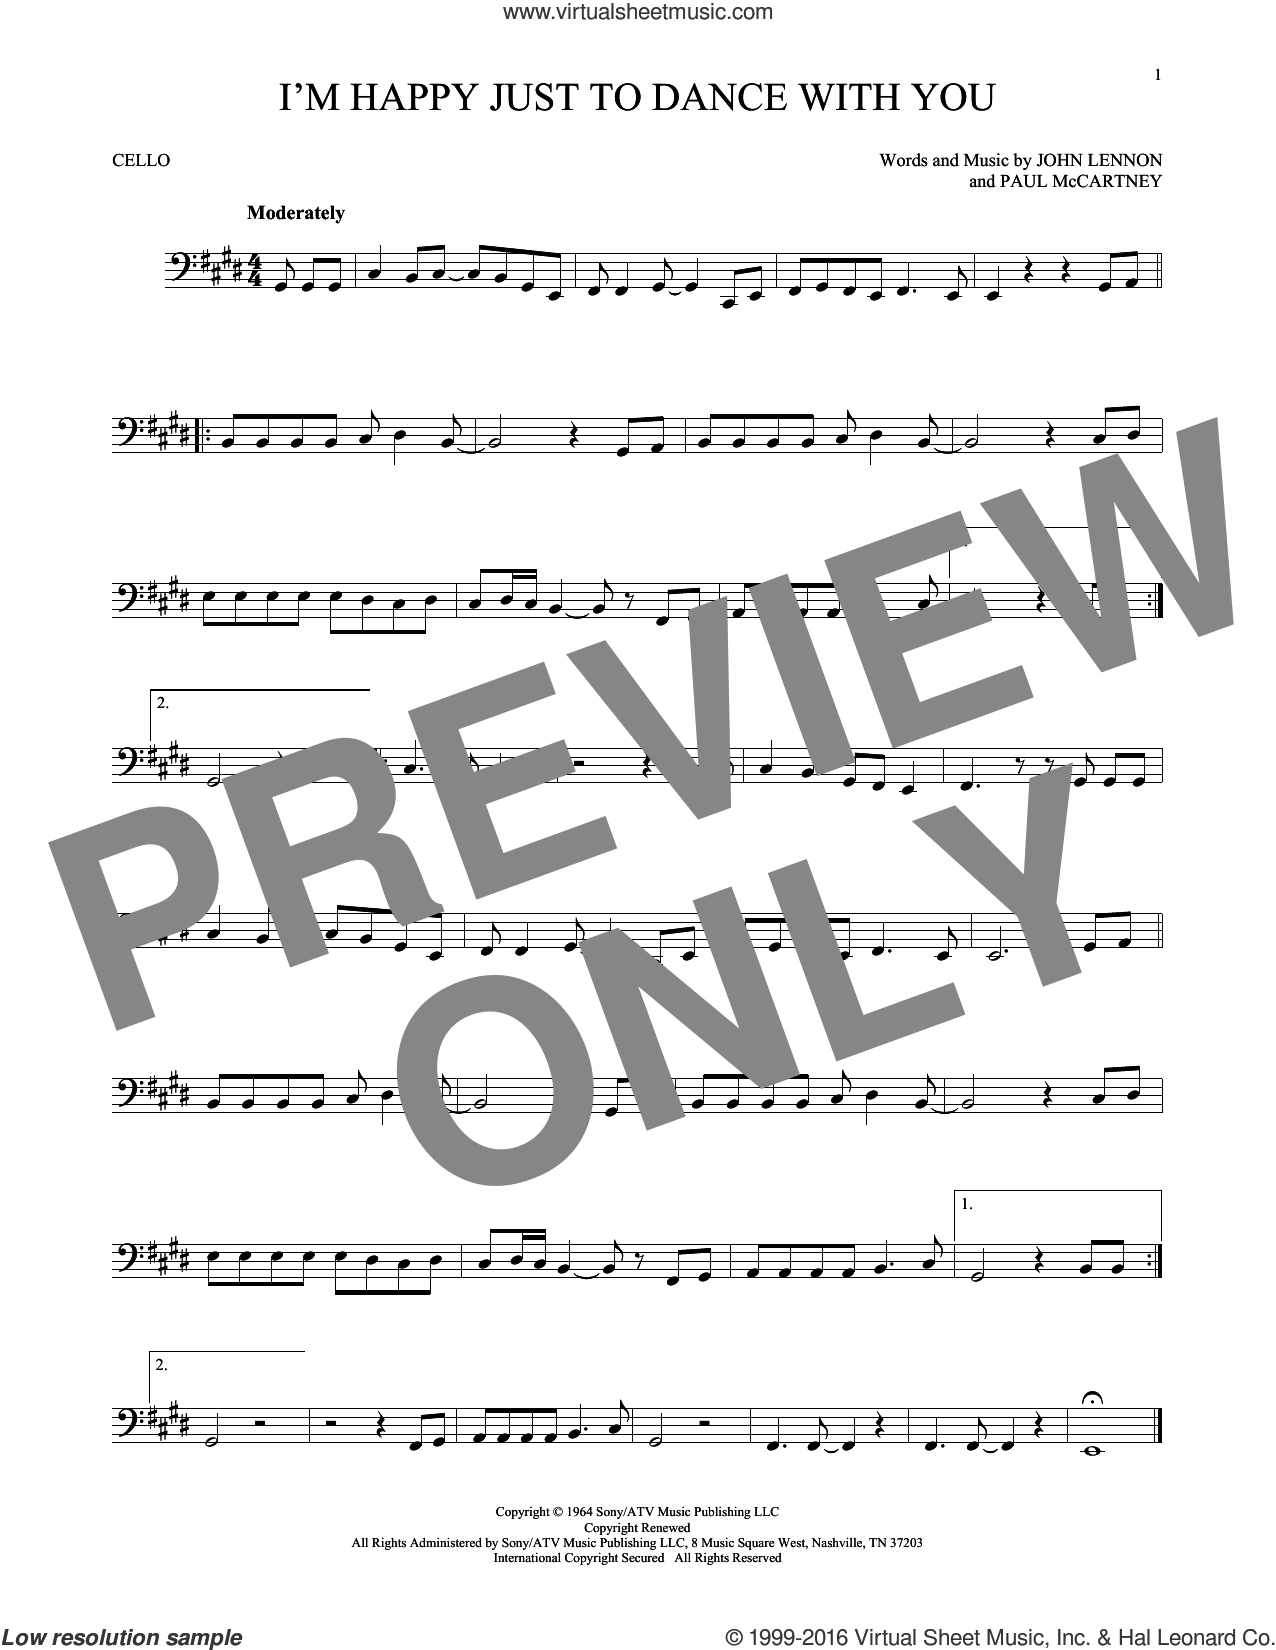 I'm Happy Just To Dance With You sheet music for cello solo by Paul McCartney, The Beatles and John Lennon. Score Image Preview.